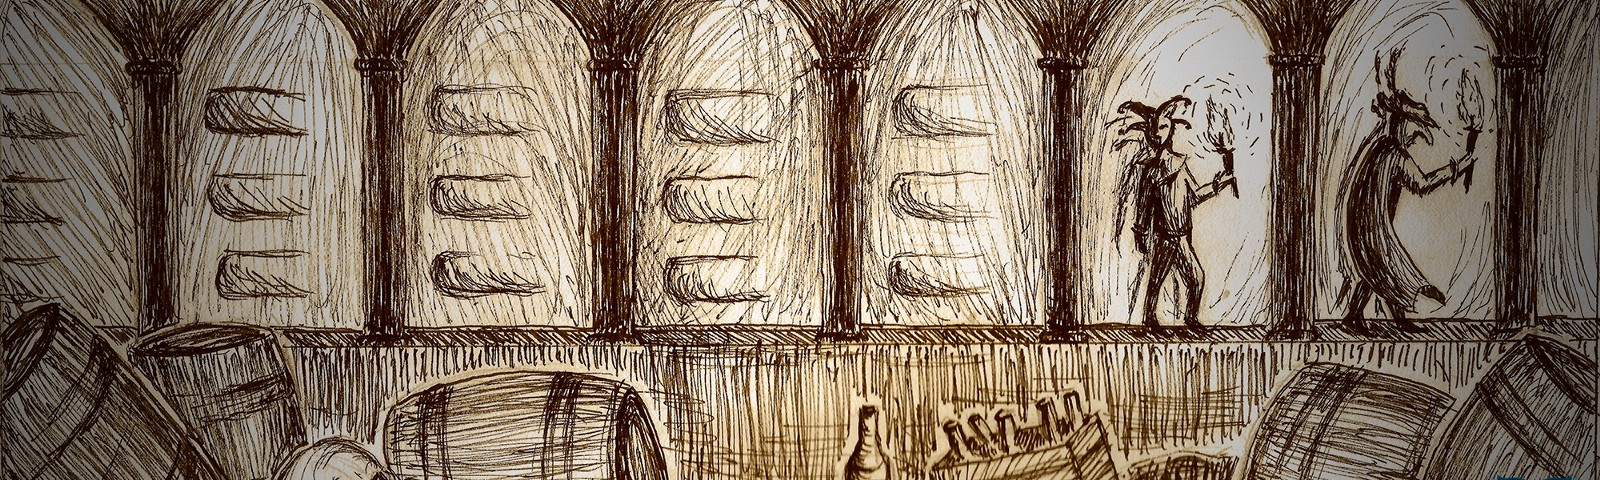 into a mad mans mind in the cask of amontillado by edgar allan poe Use these examples of symbolism and irony in the cask of amontillado by edgar allan poe to of the narrator's mind his venturing into the catacombs.